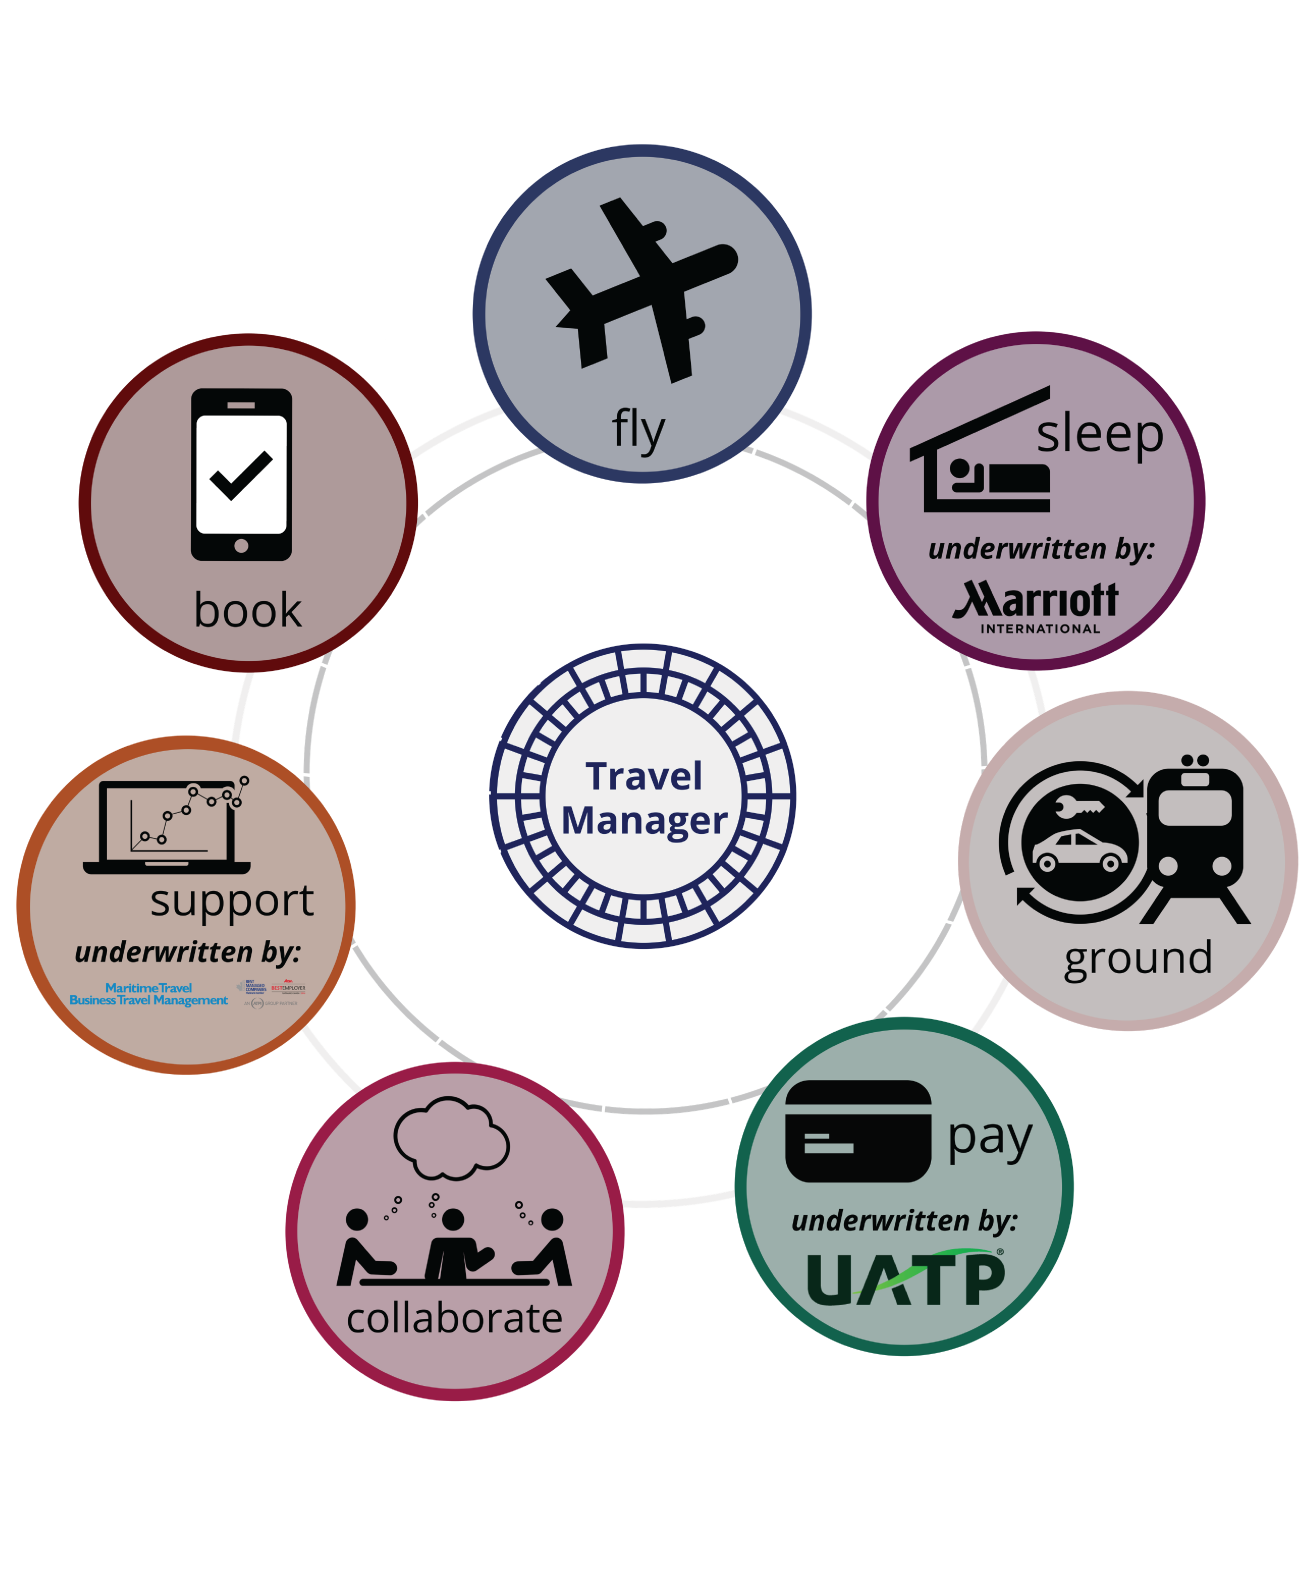 company travel policy template - magnificent corporate travel policy template picture